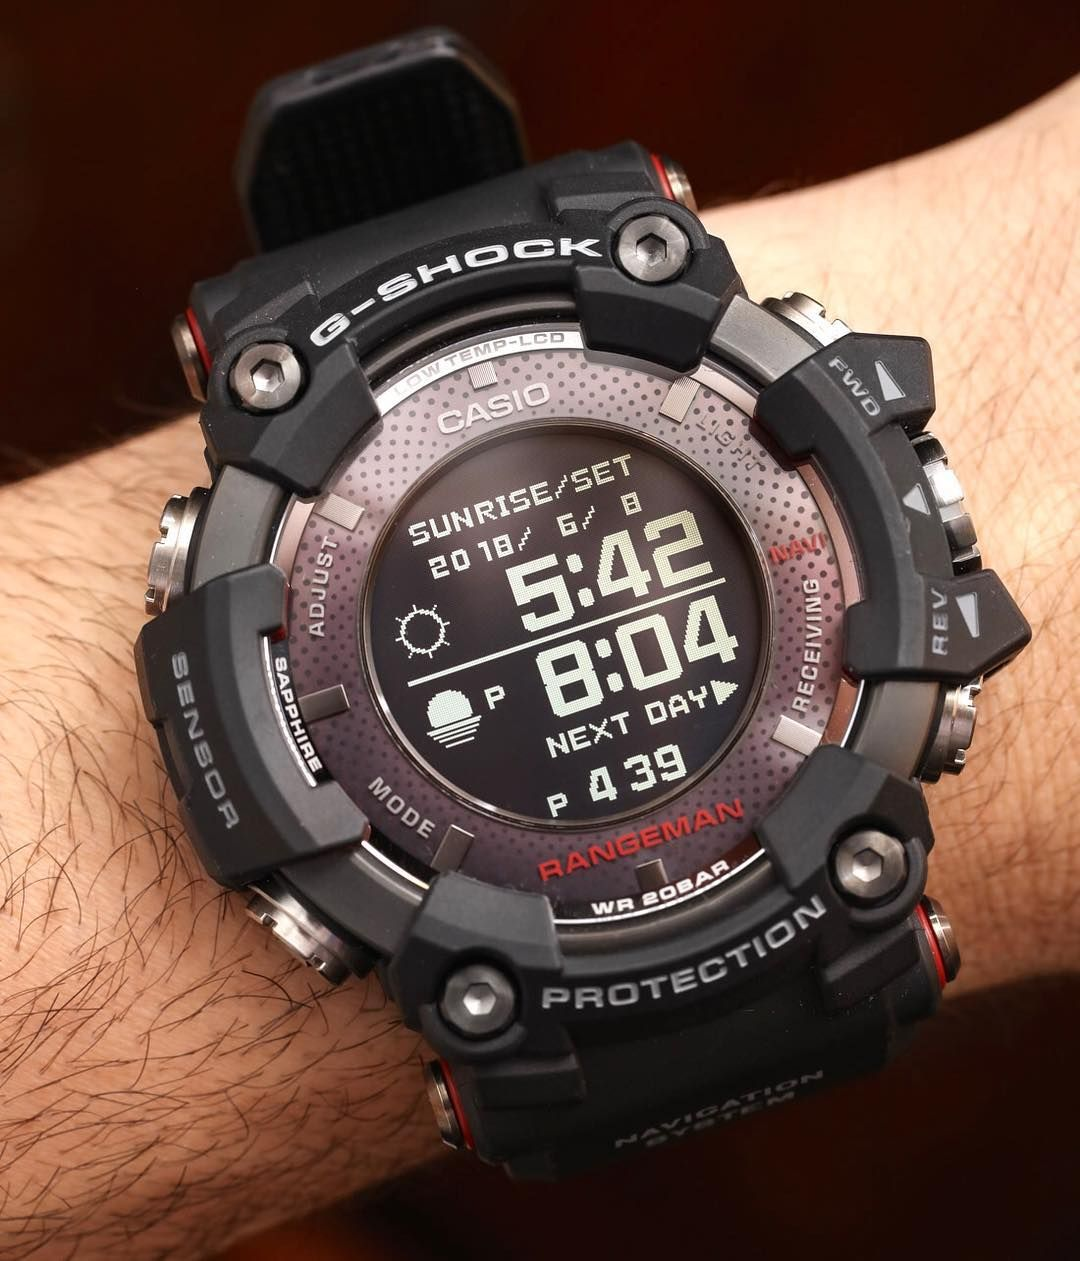 d3865168791e45 It's the biggest, baddest, and most capable G-Shock we've ever worn, and  today, Ariel shares his thoughts on the new solar-powered #GPRB1000  #Rangeman on ...